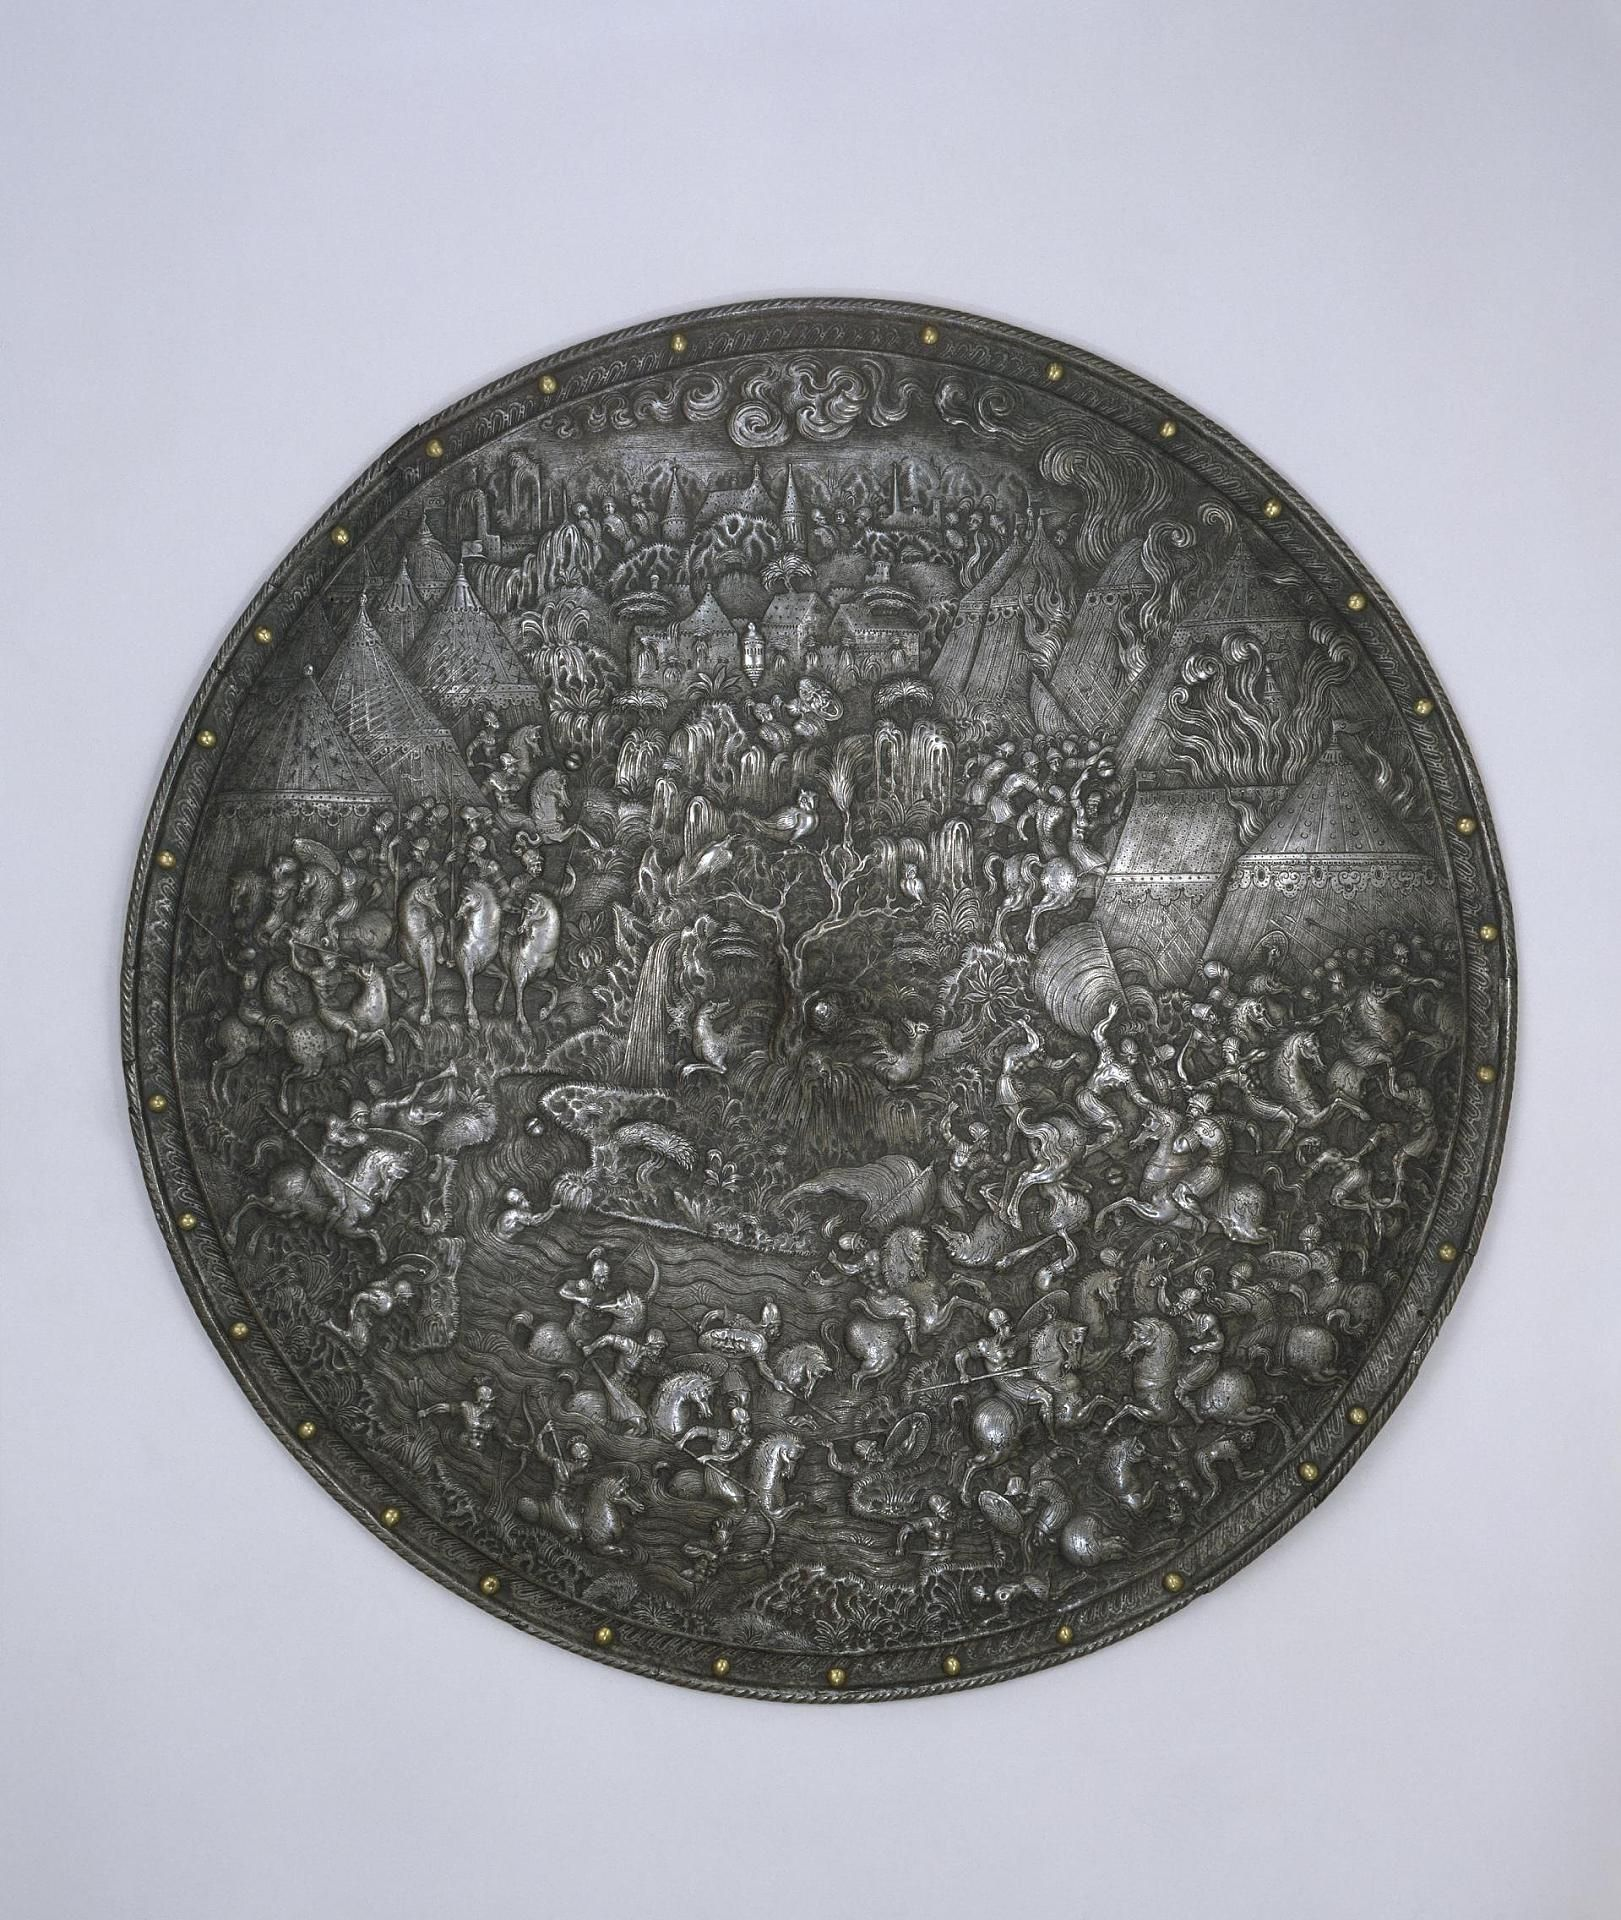 Pageant Shield. Place of creation: Italy. Date: 1560-1570. School: Milan. Material: steel. Technique: forged and chased.